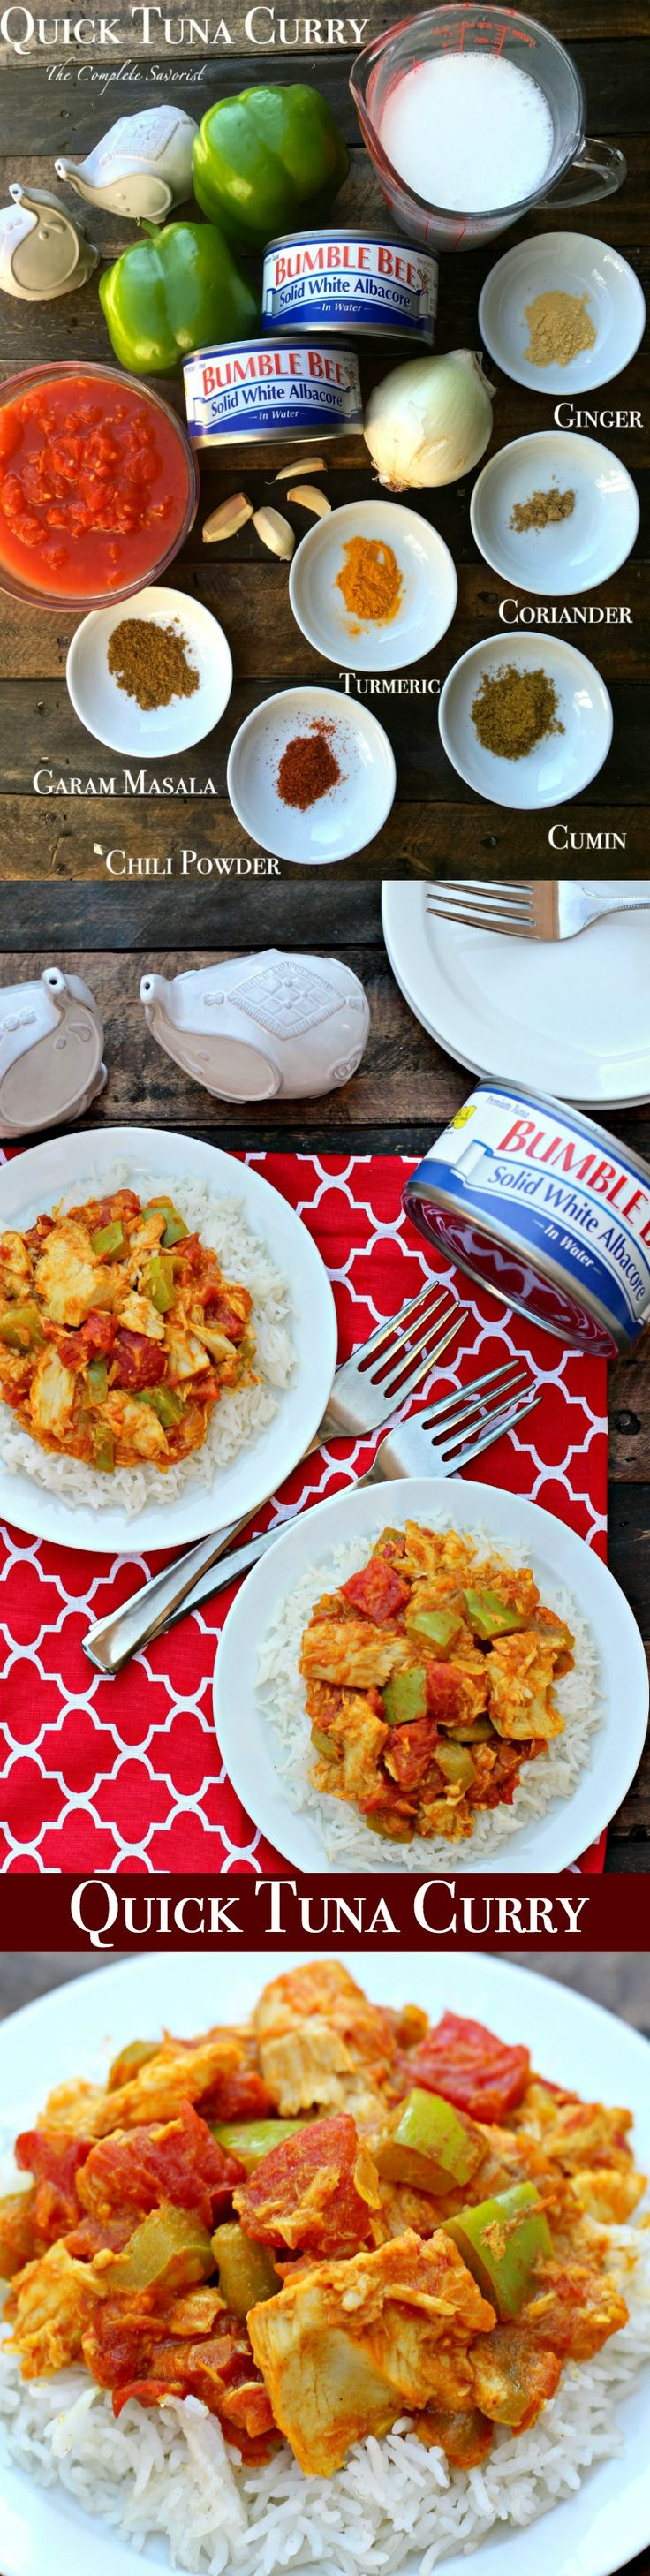 Quick Tuna Curry ~ Traditional Indian curry of aromatic spices, onions, peppers, and tomatoes, with solid white albacore, making this no boring tuna dish ~ The Complete Savorist #OnlyAlbacore #CG ad @bumblebeefoods